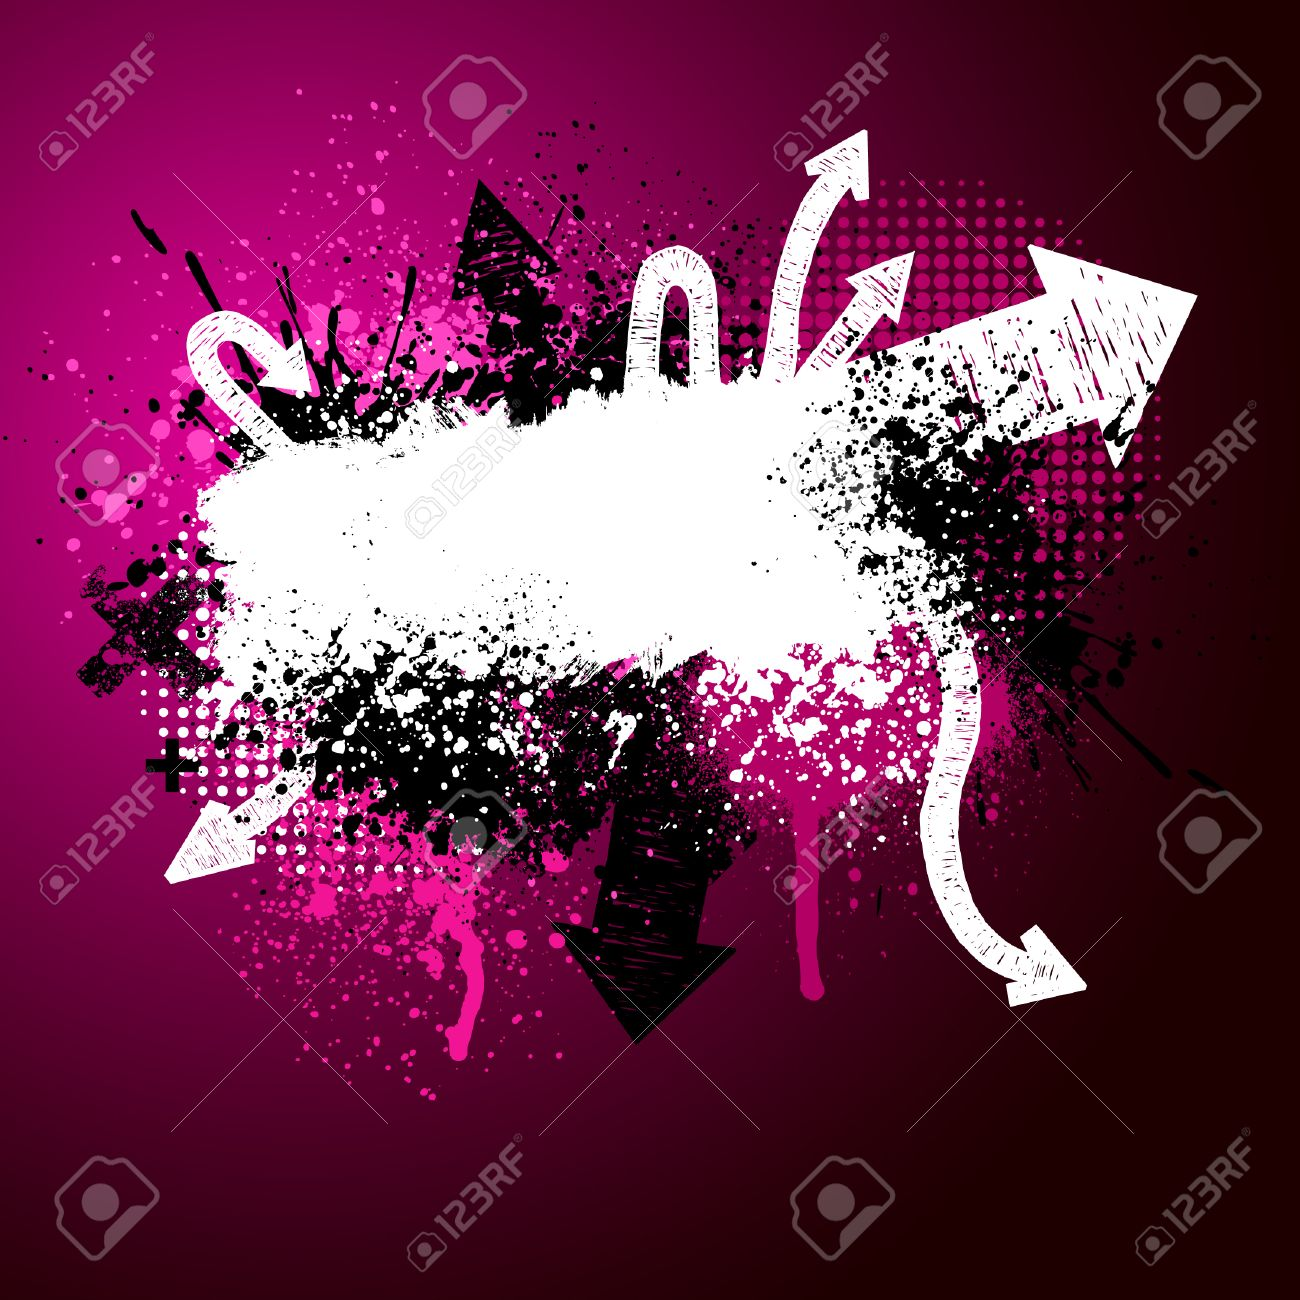 Pink, black and white grunge arrow paint splatter background Stock Vector - 4833831